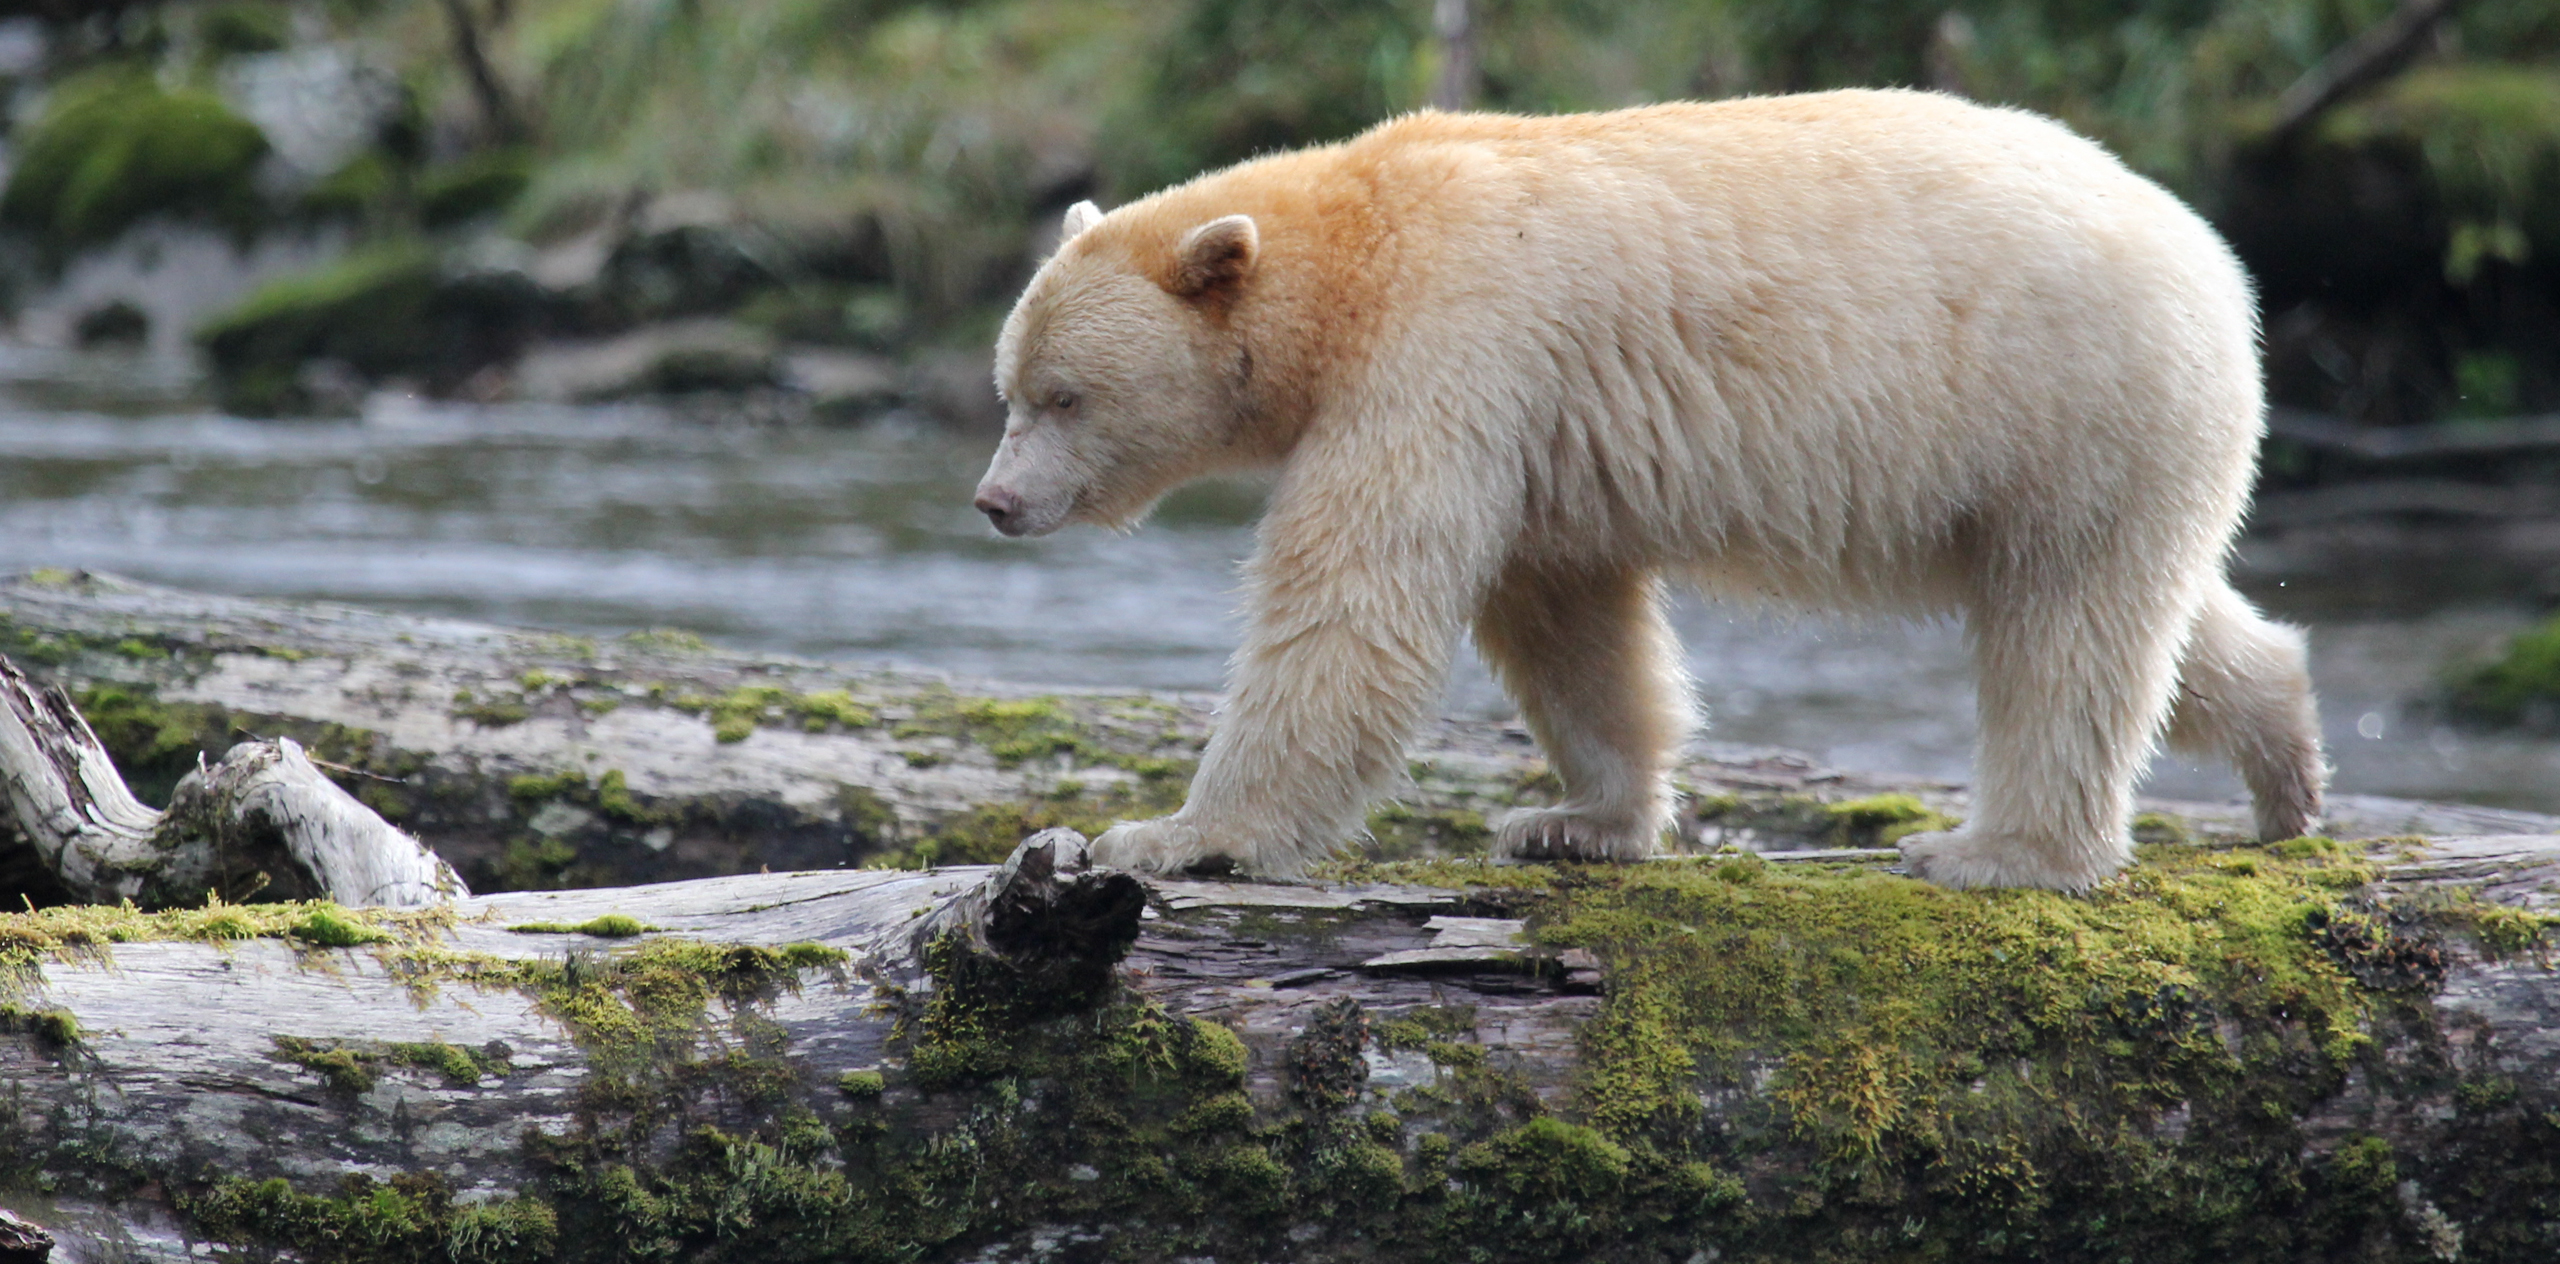 A Kermode bear walking across a river in the Great Bear Rainforest, British Columbia